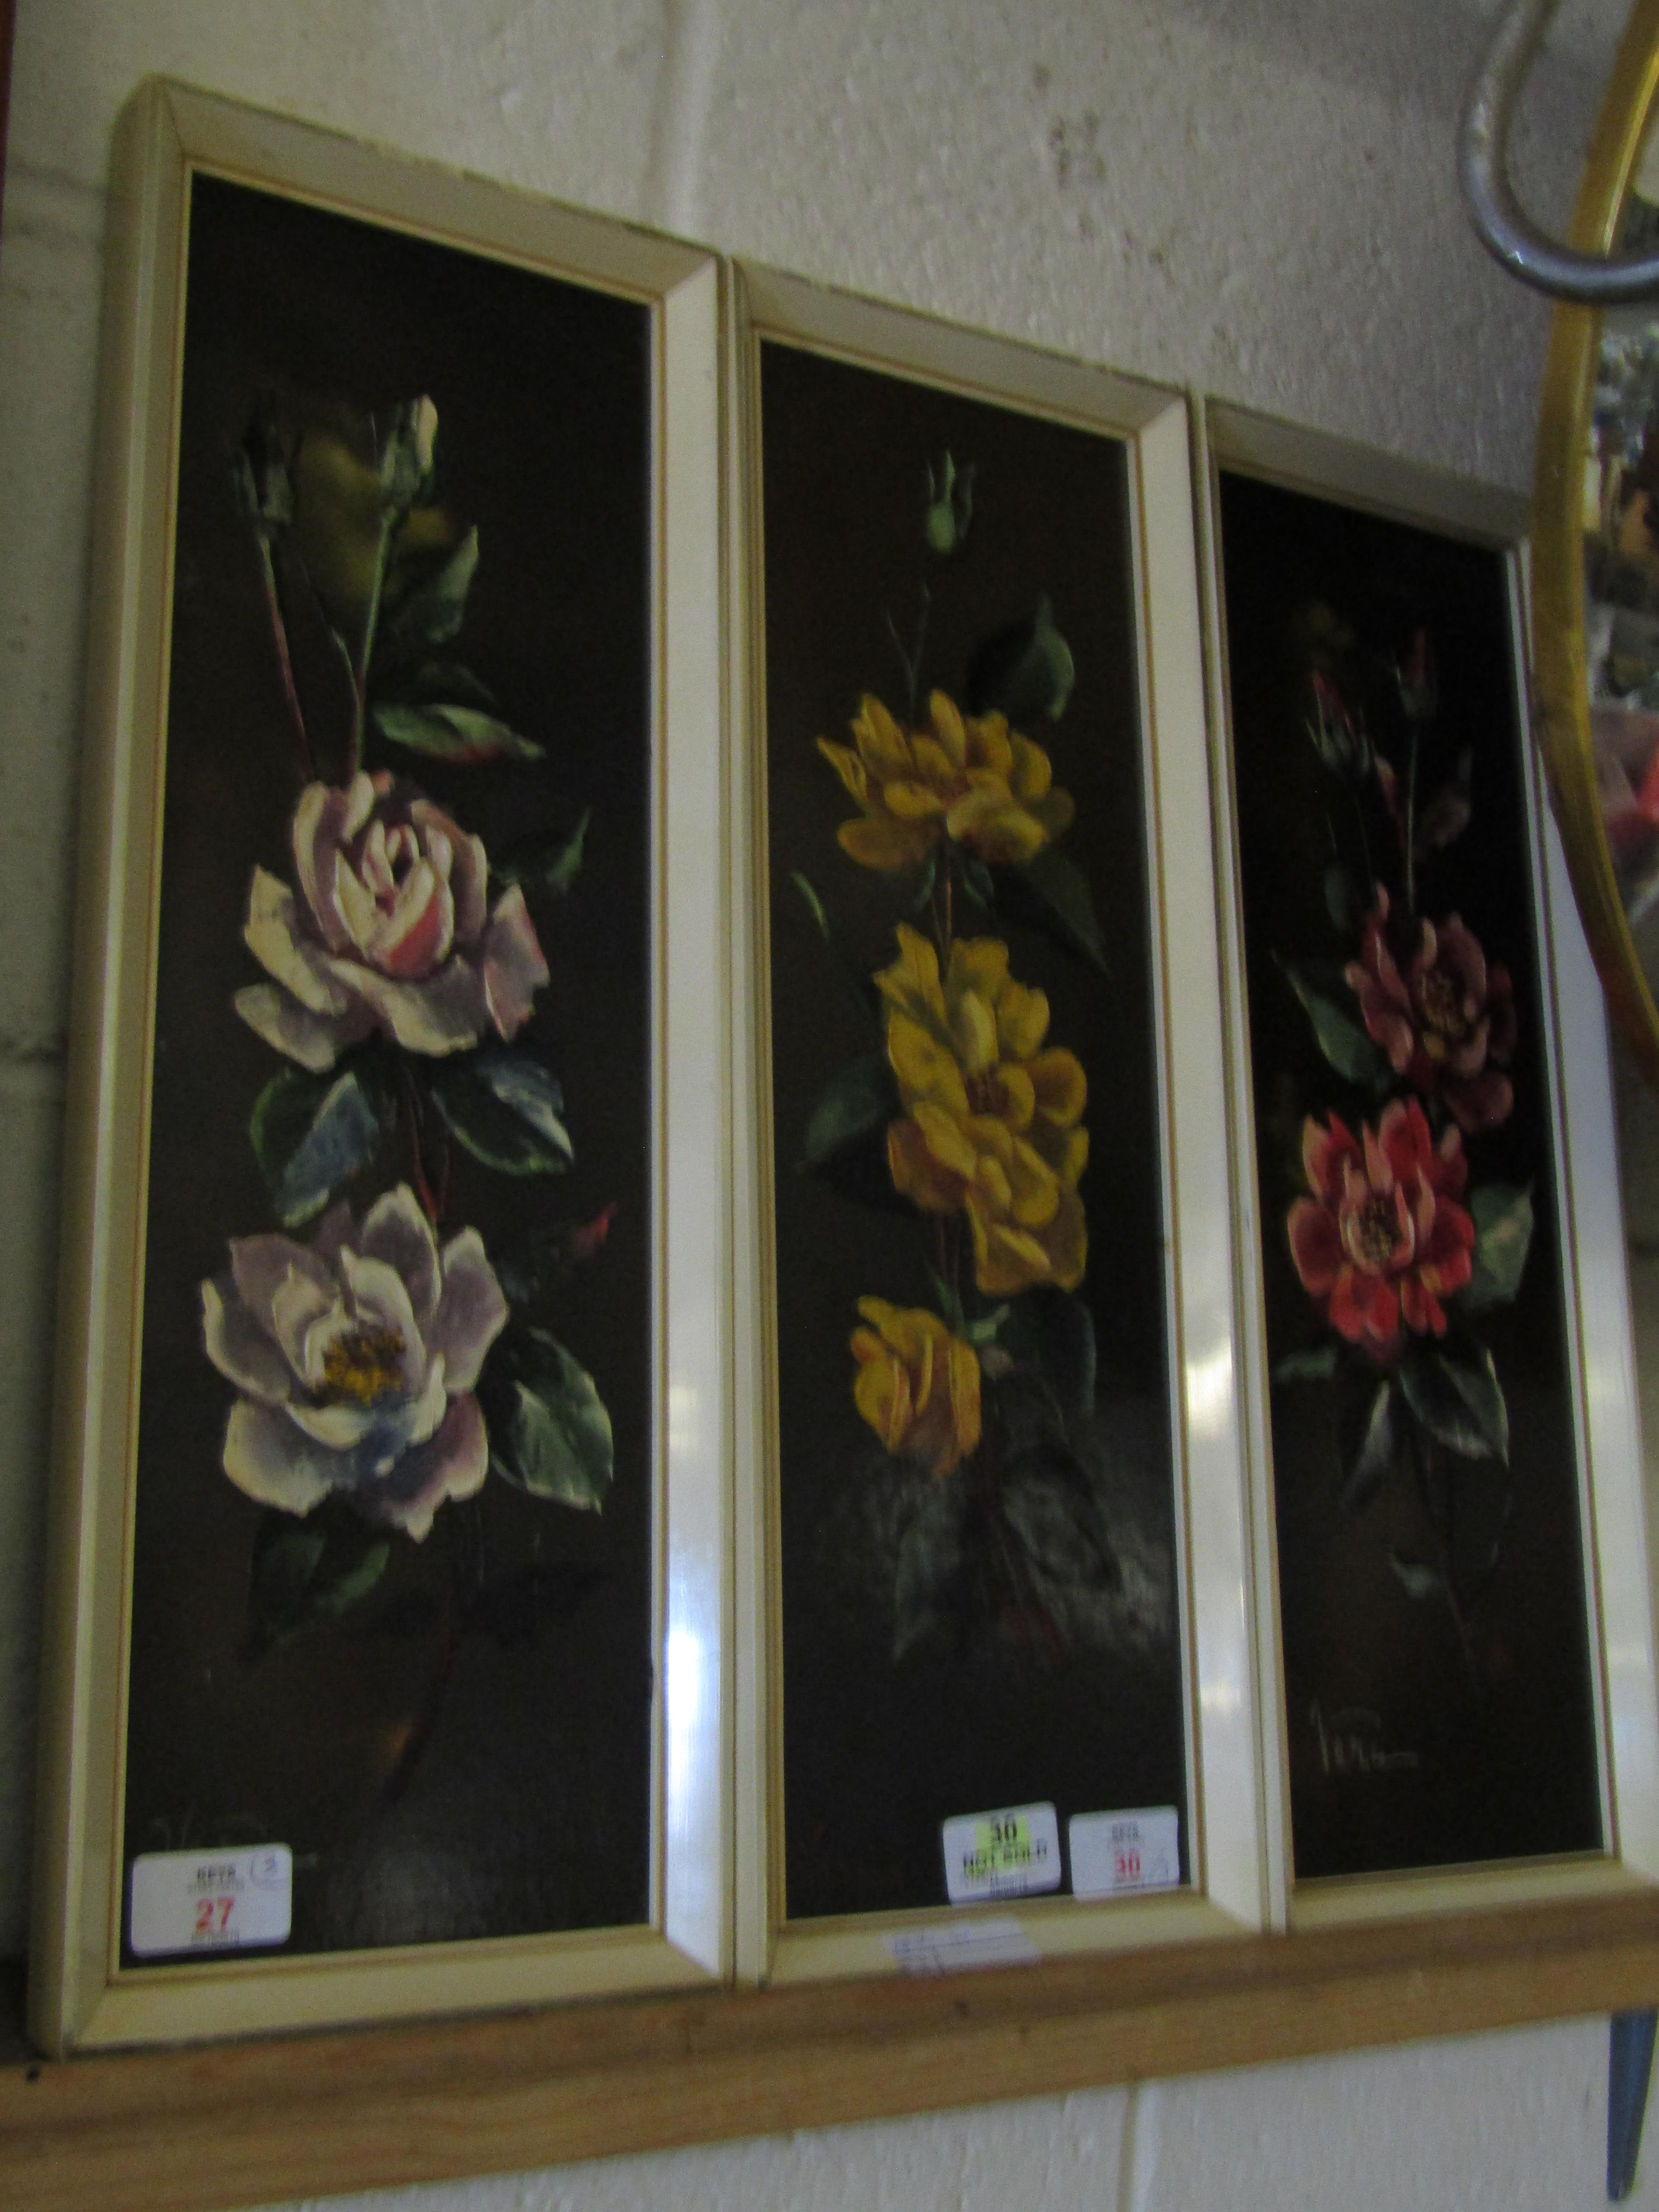 Lot 27 - THREE FRAMED OILS ON PANELS OF FLOWERS